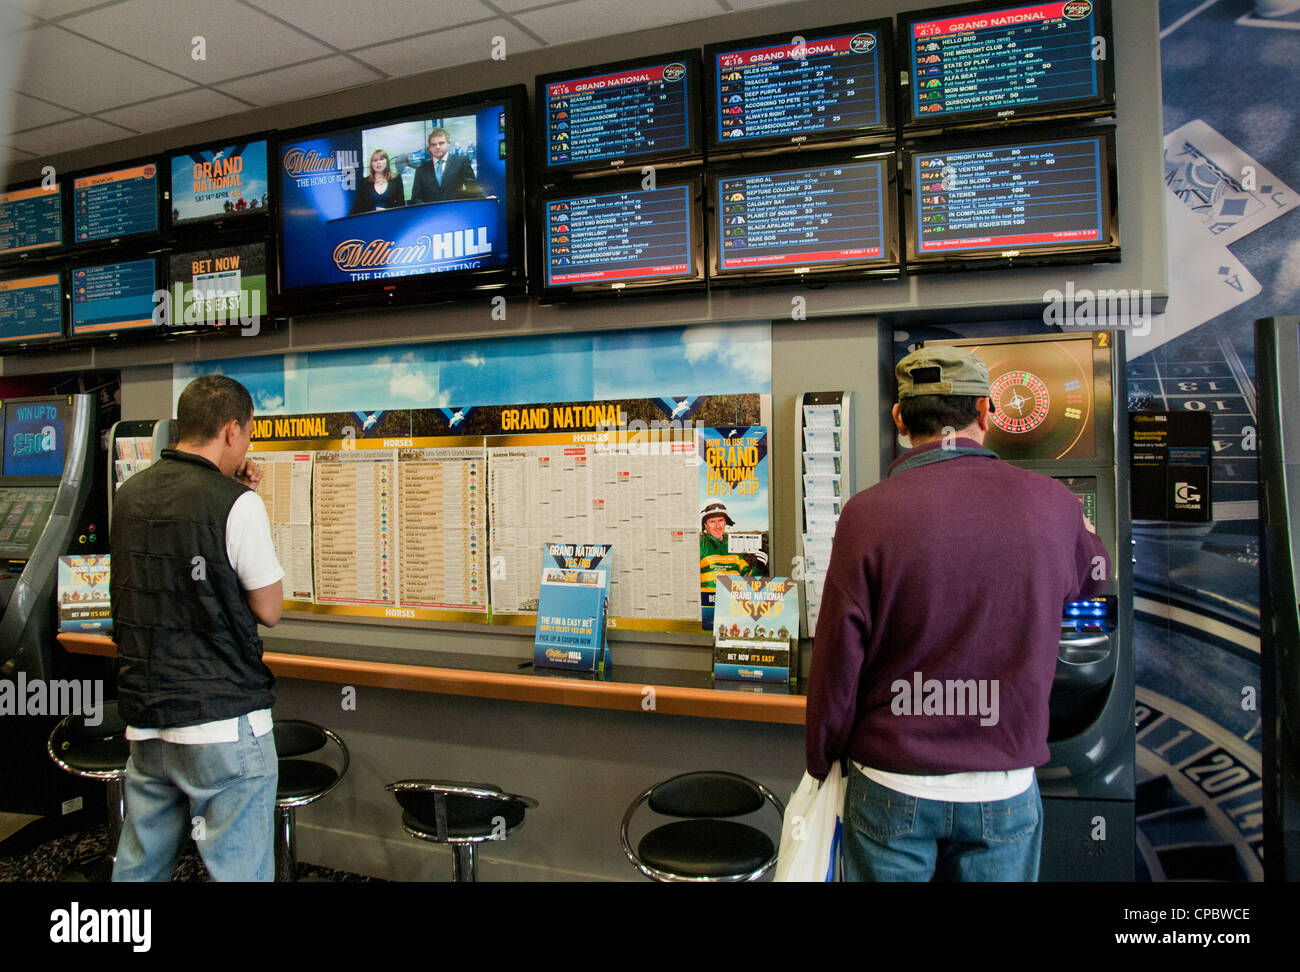 People in betting shop placing bets during grand national horse race Stock Photo